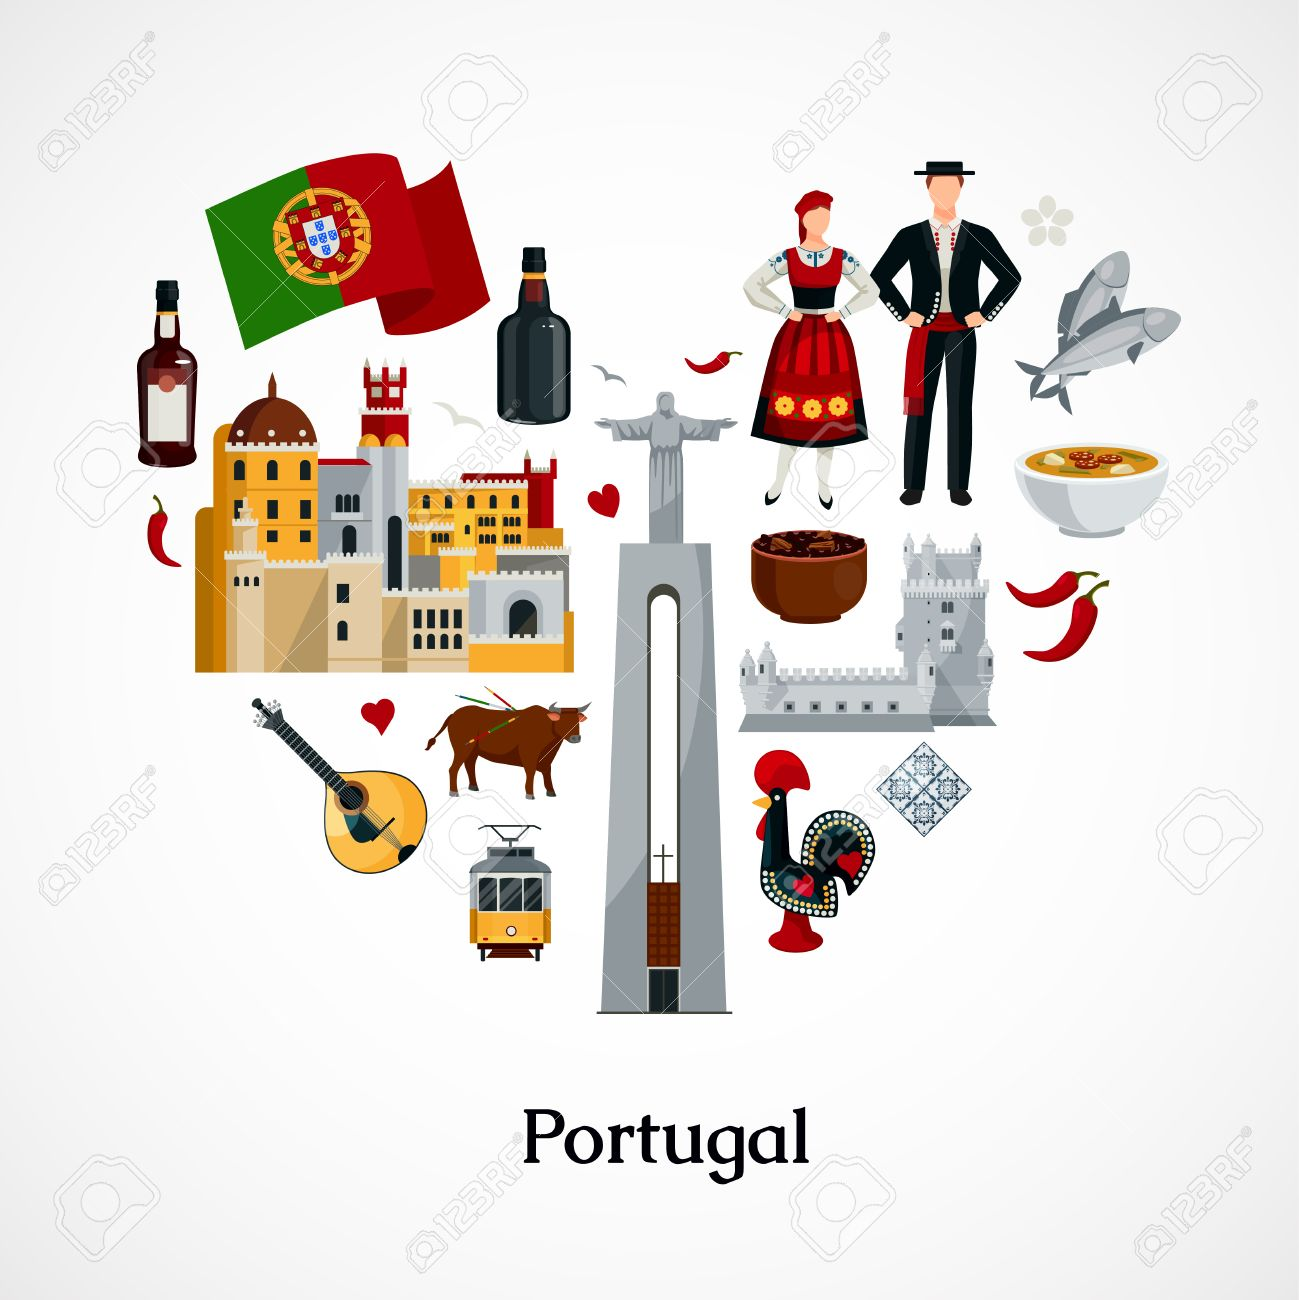 Portugal National Symbols